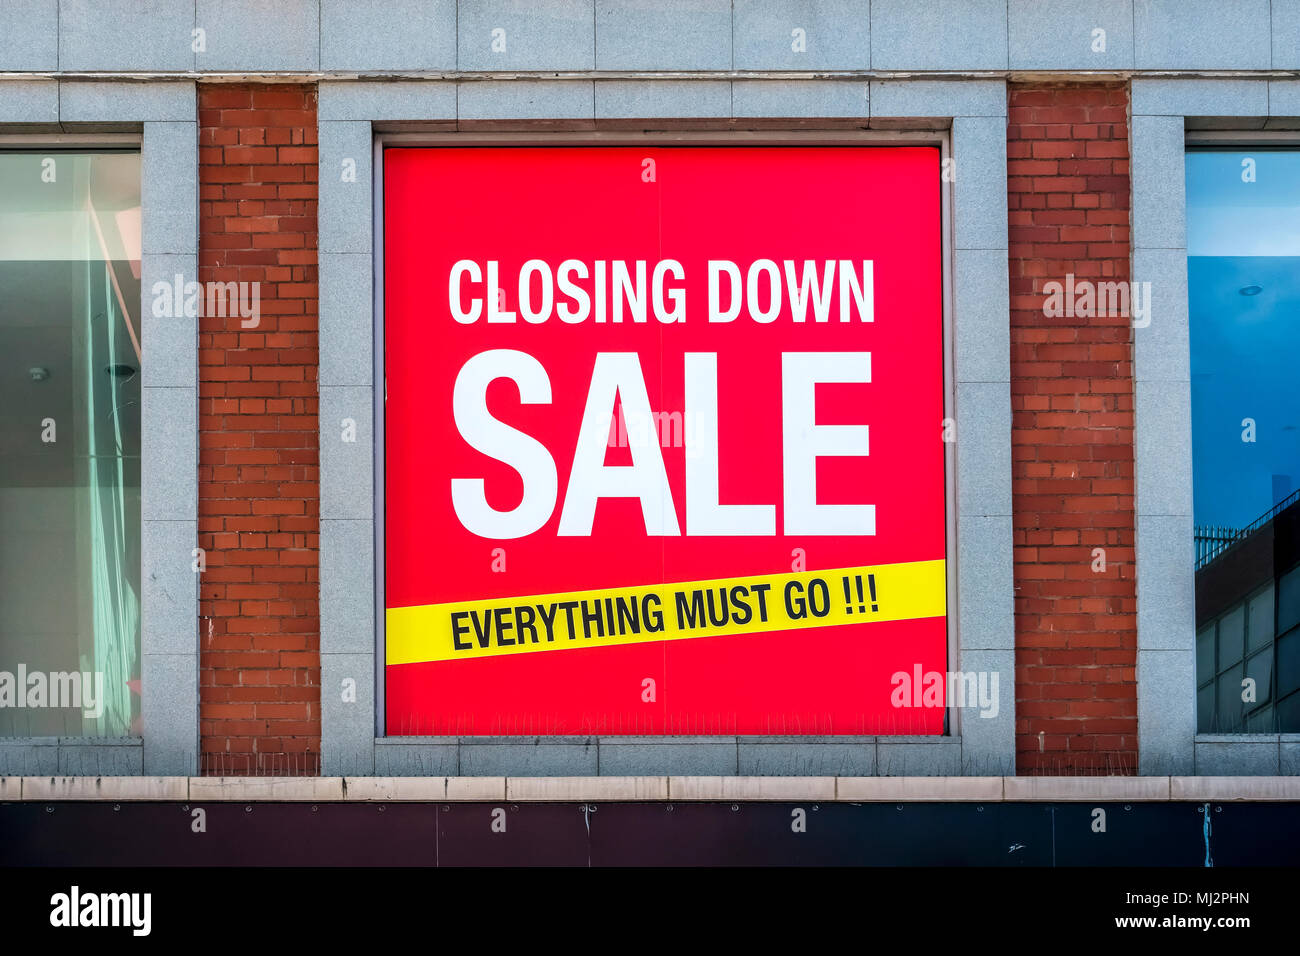 Store closing down sale sign board. Everything must go. Recession concept. Retail shop shutting down. Shopping. Dublin, Ireland, Europe. Close up. - Stock Image